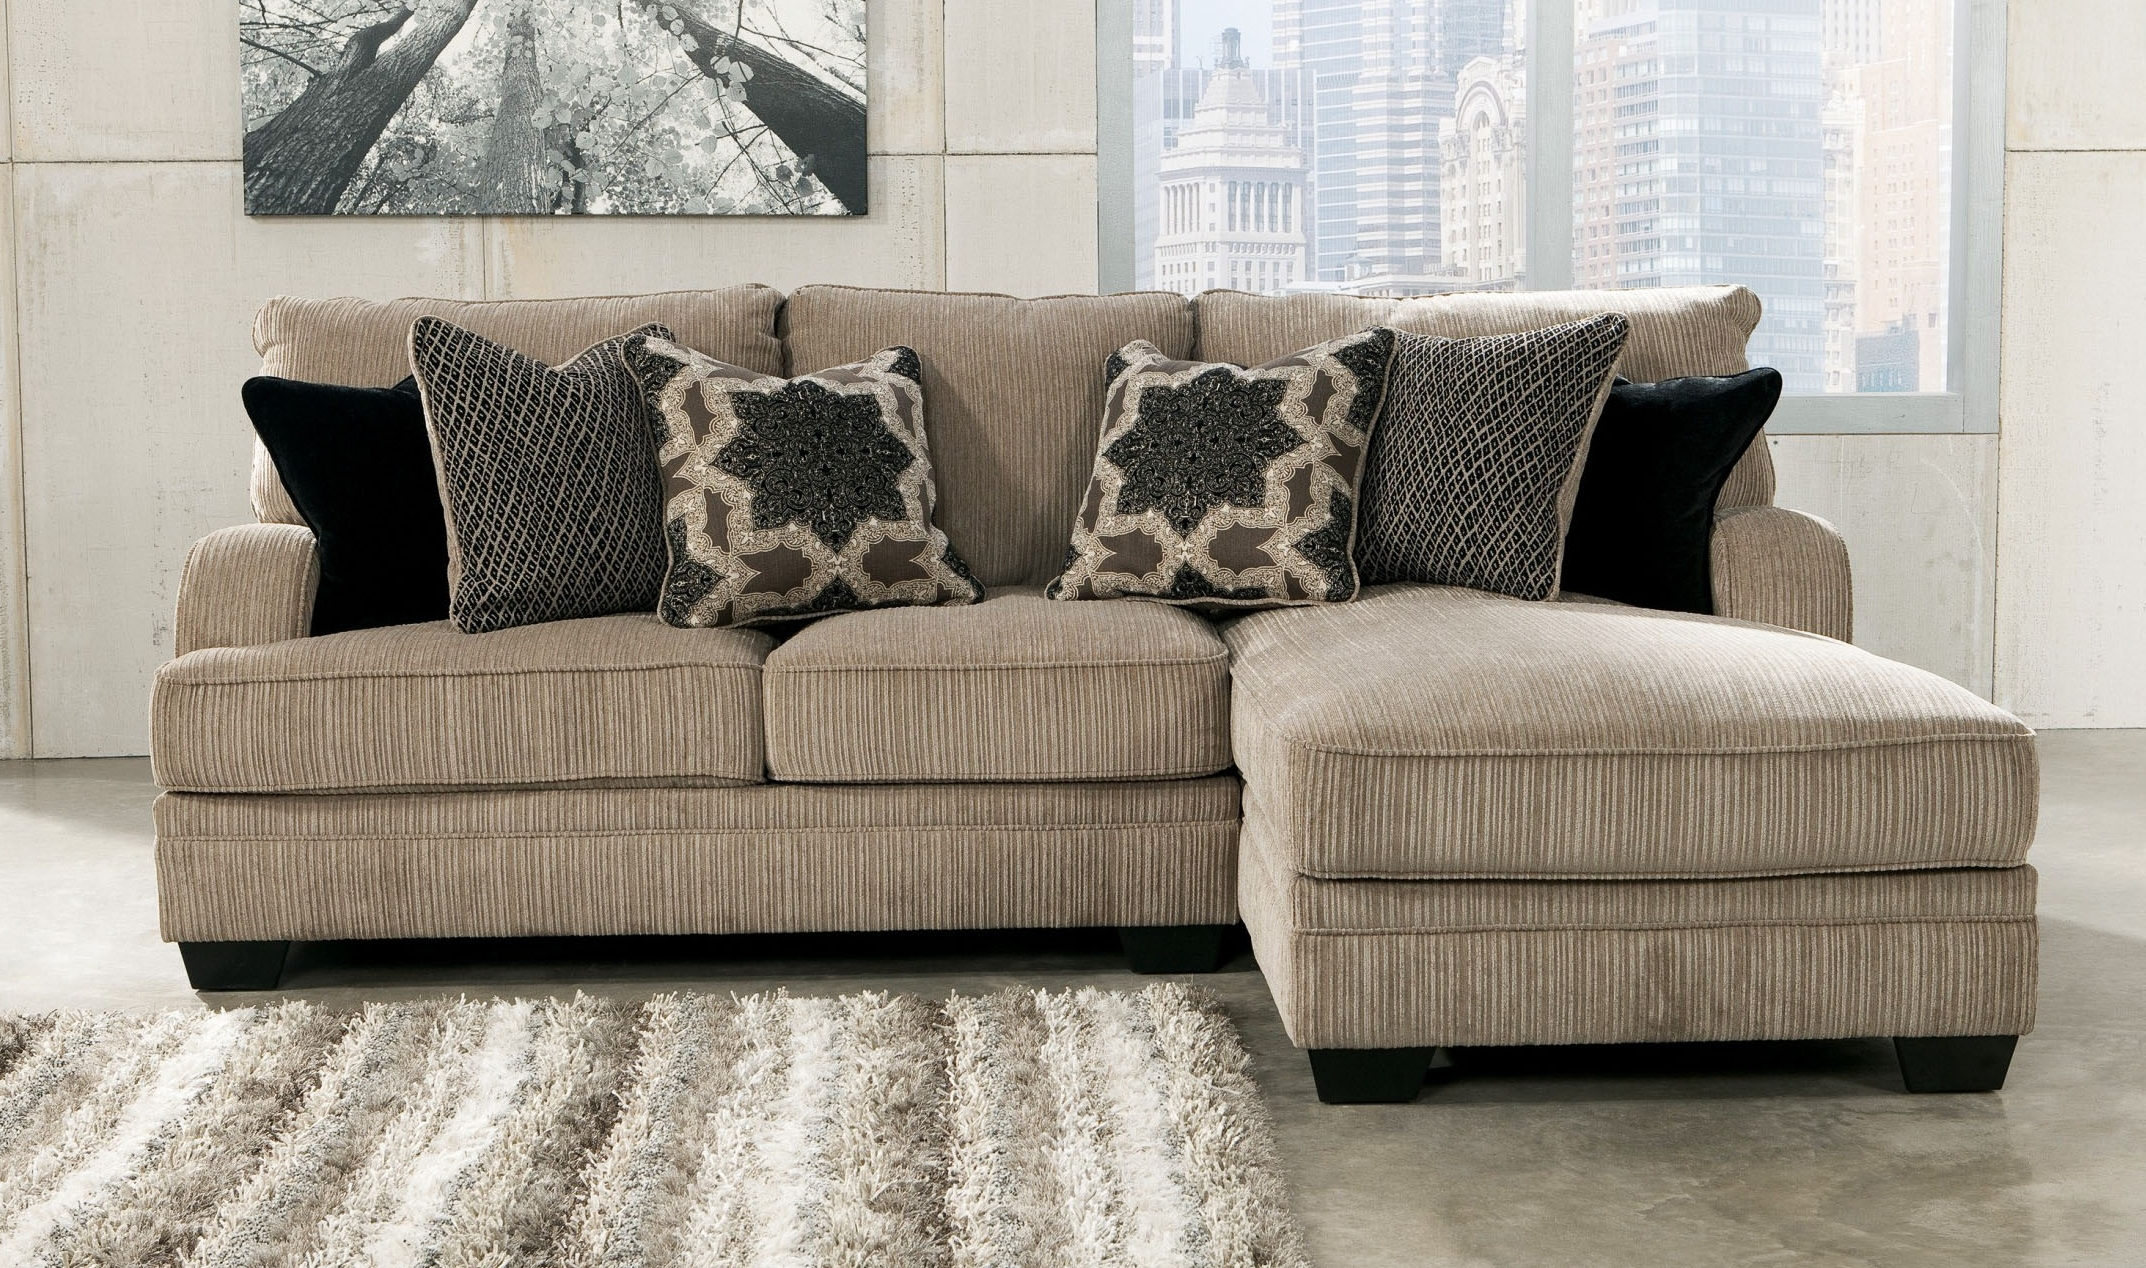 Small Sectional Furniture For The Best Looks Of Your House Pertaining To Most Current Sectional Sofas For Small Places (View 17 of 20)